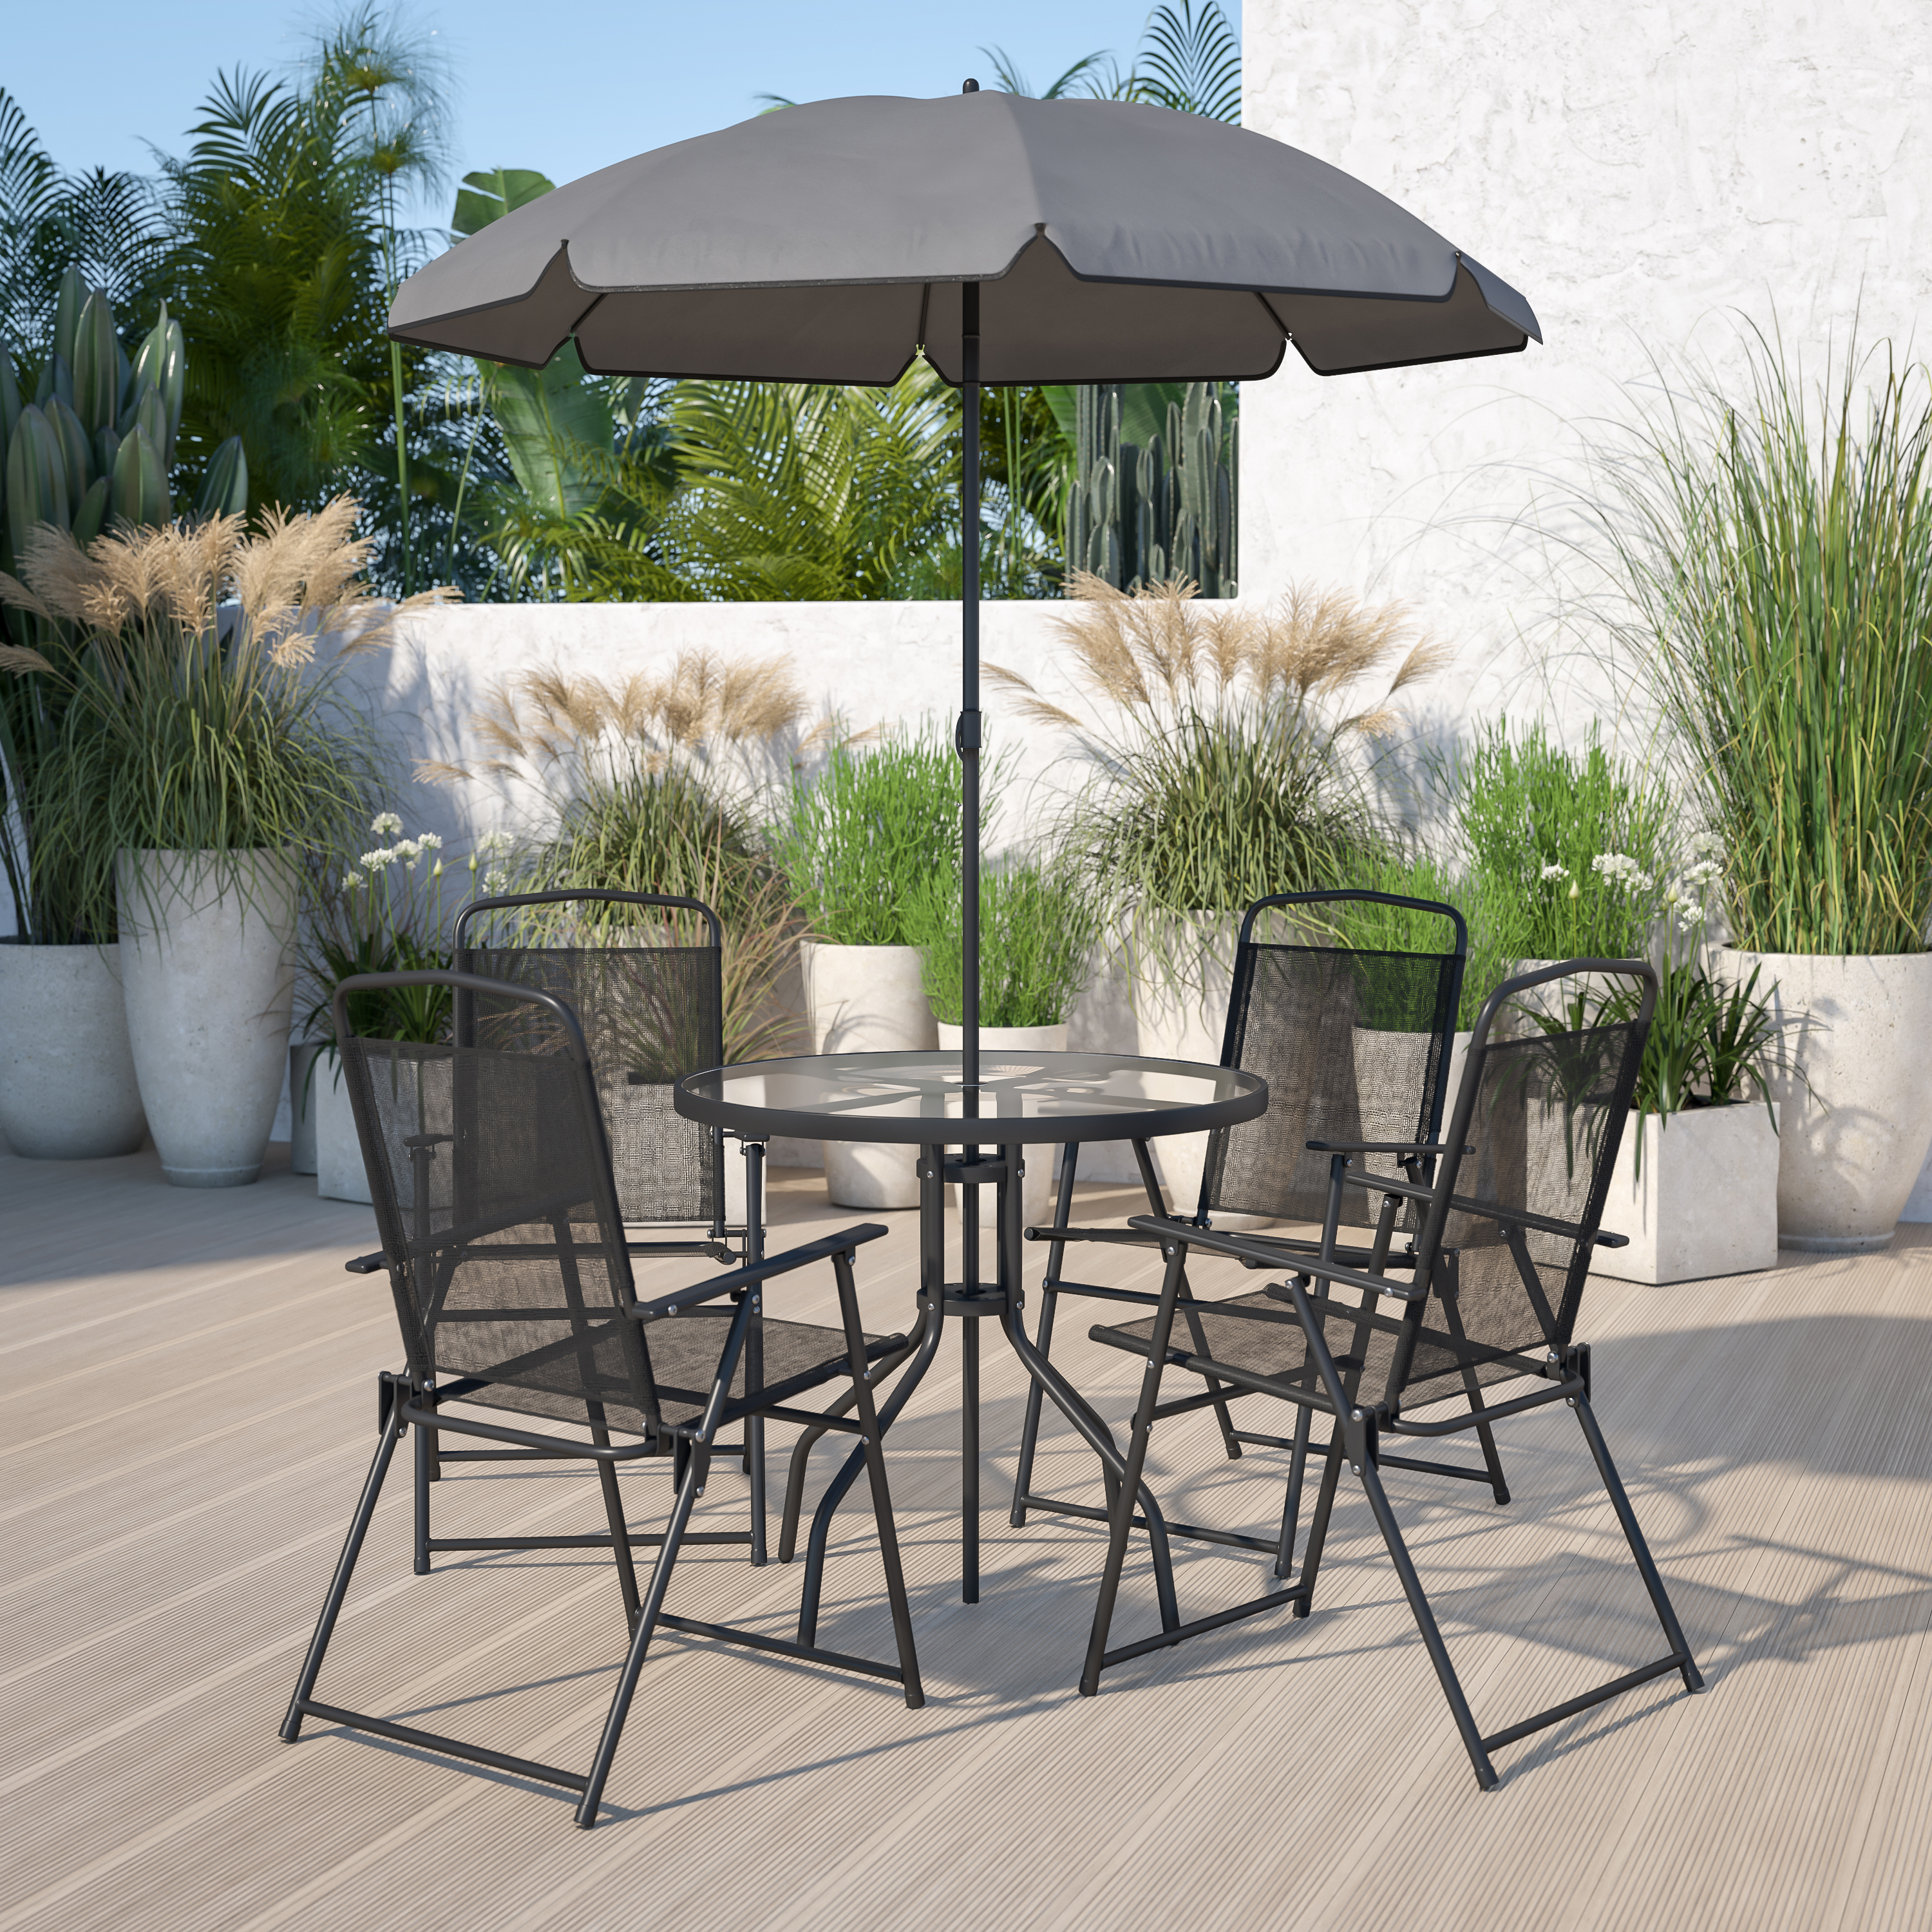 6 Piece Black Patio Set With Table Umbrella And 4 Folding